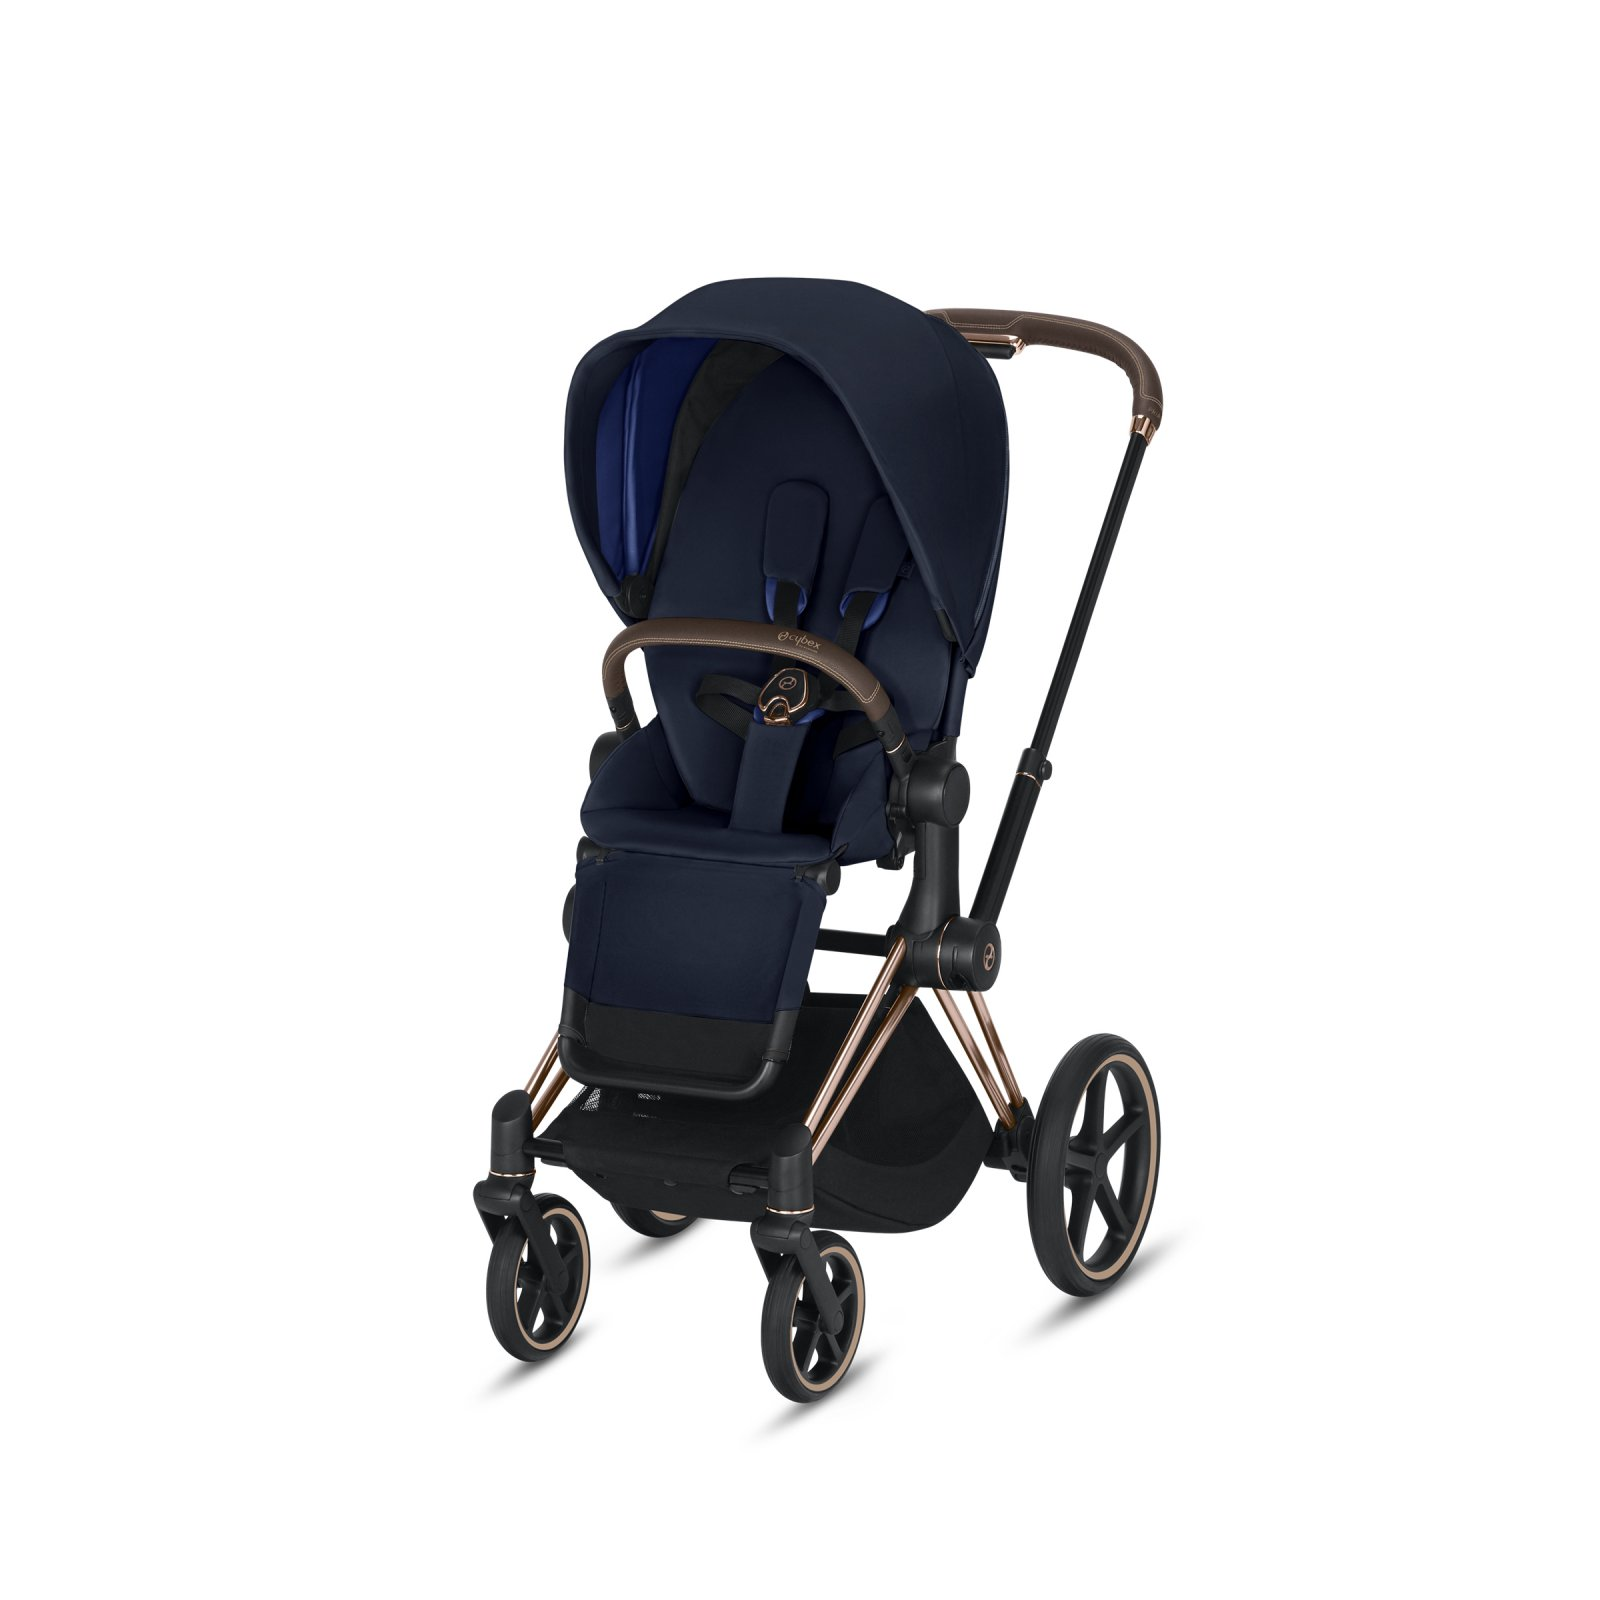 Cybex Priam Rose Gold Frame with Premium Black Seat Pack